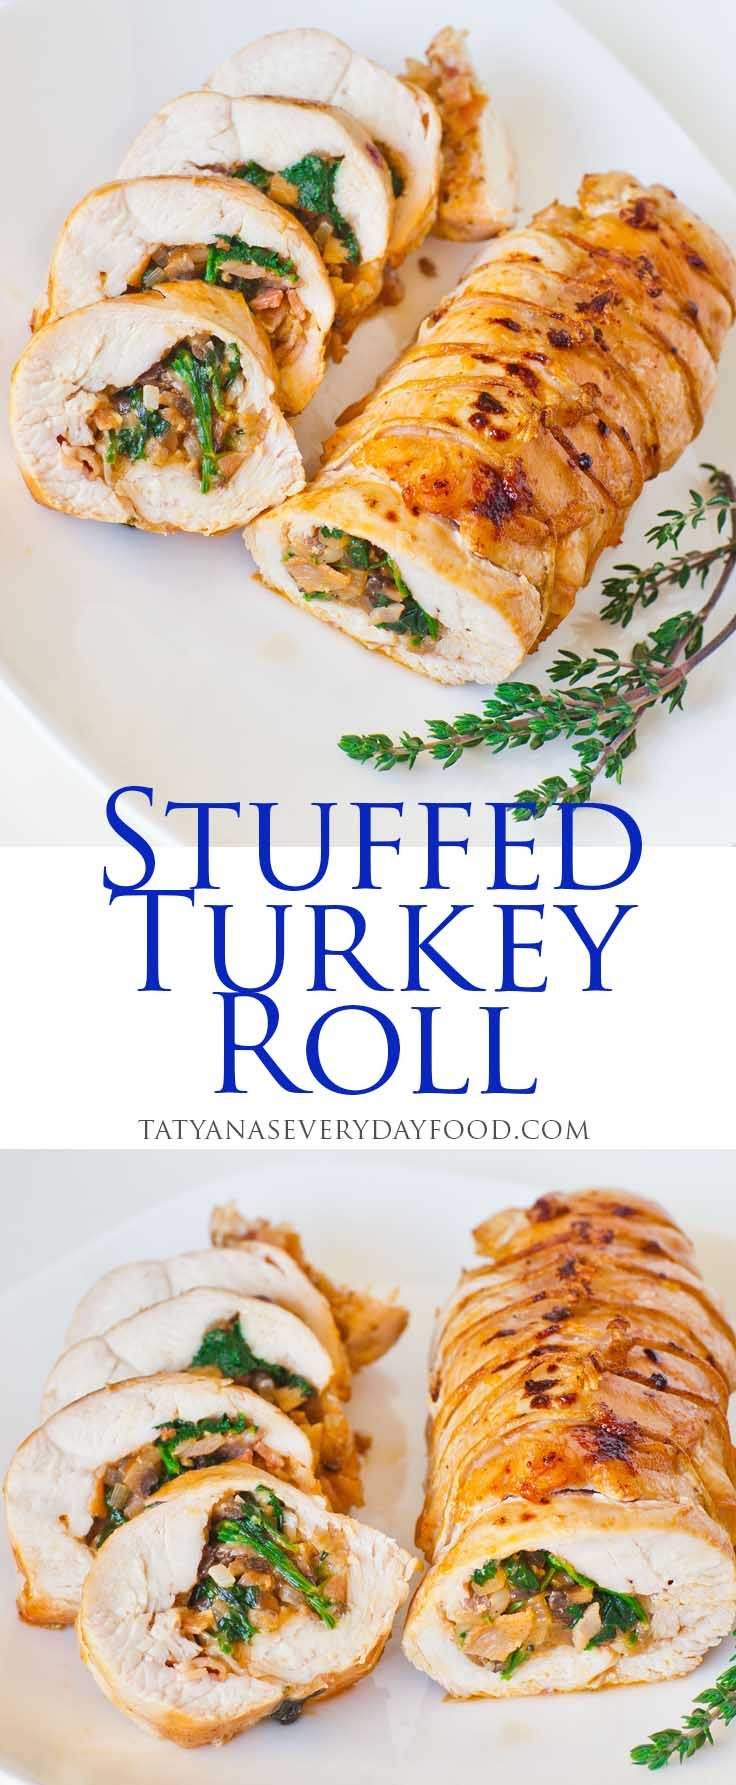 Stuffed Turkey Roll - perfect for Thanksgiving!